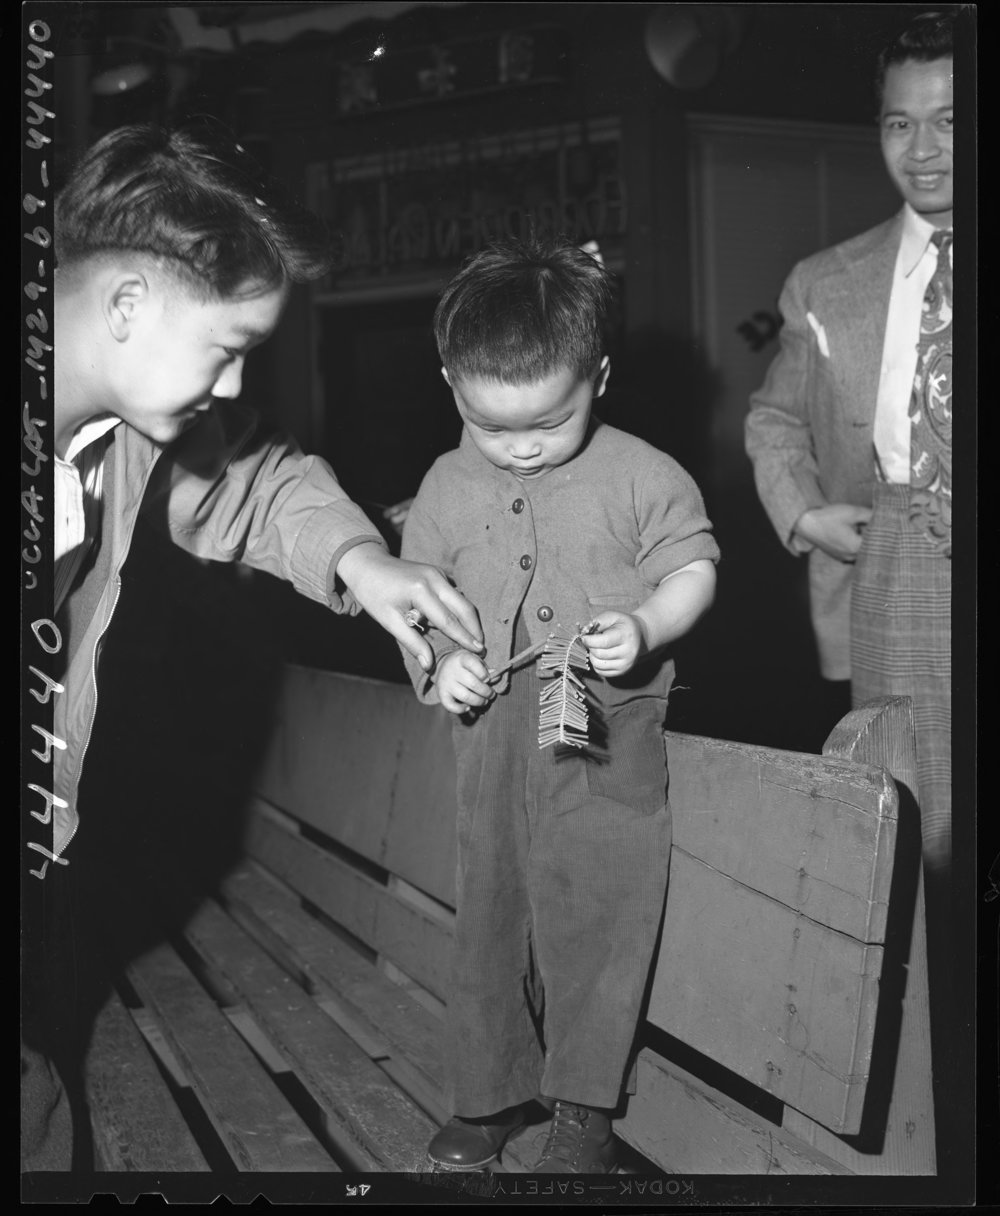 Roland Soo Hoo, 3, armed with punk stick and firecrackers, gets instructions from an older brother in preparation for celebrating Chinese New Year's Day. Photo via  Los Angeles Times  Photographs Collection (1947)